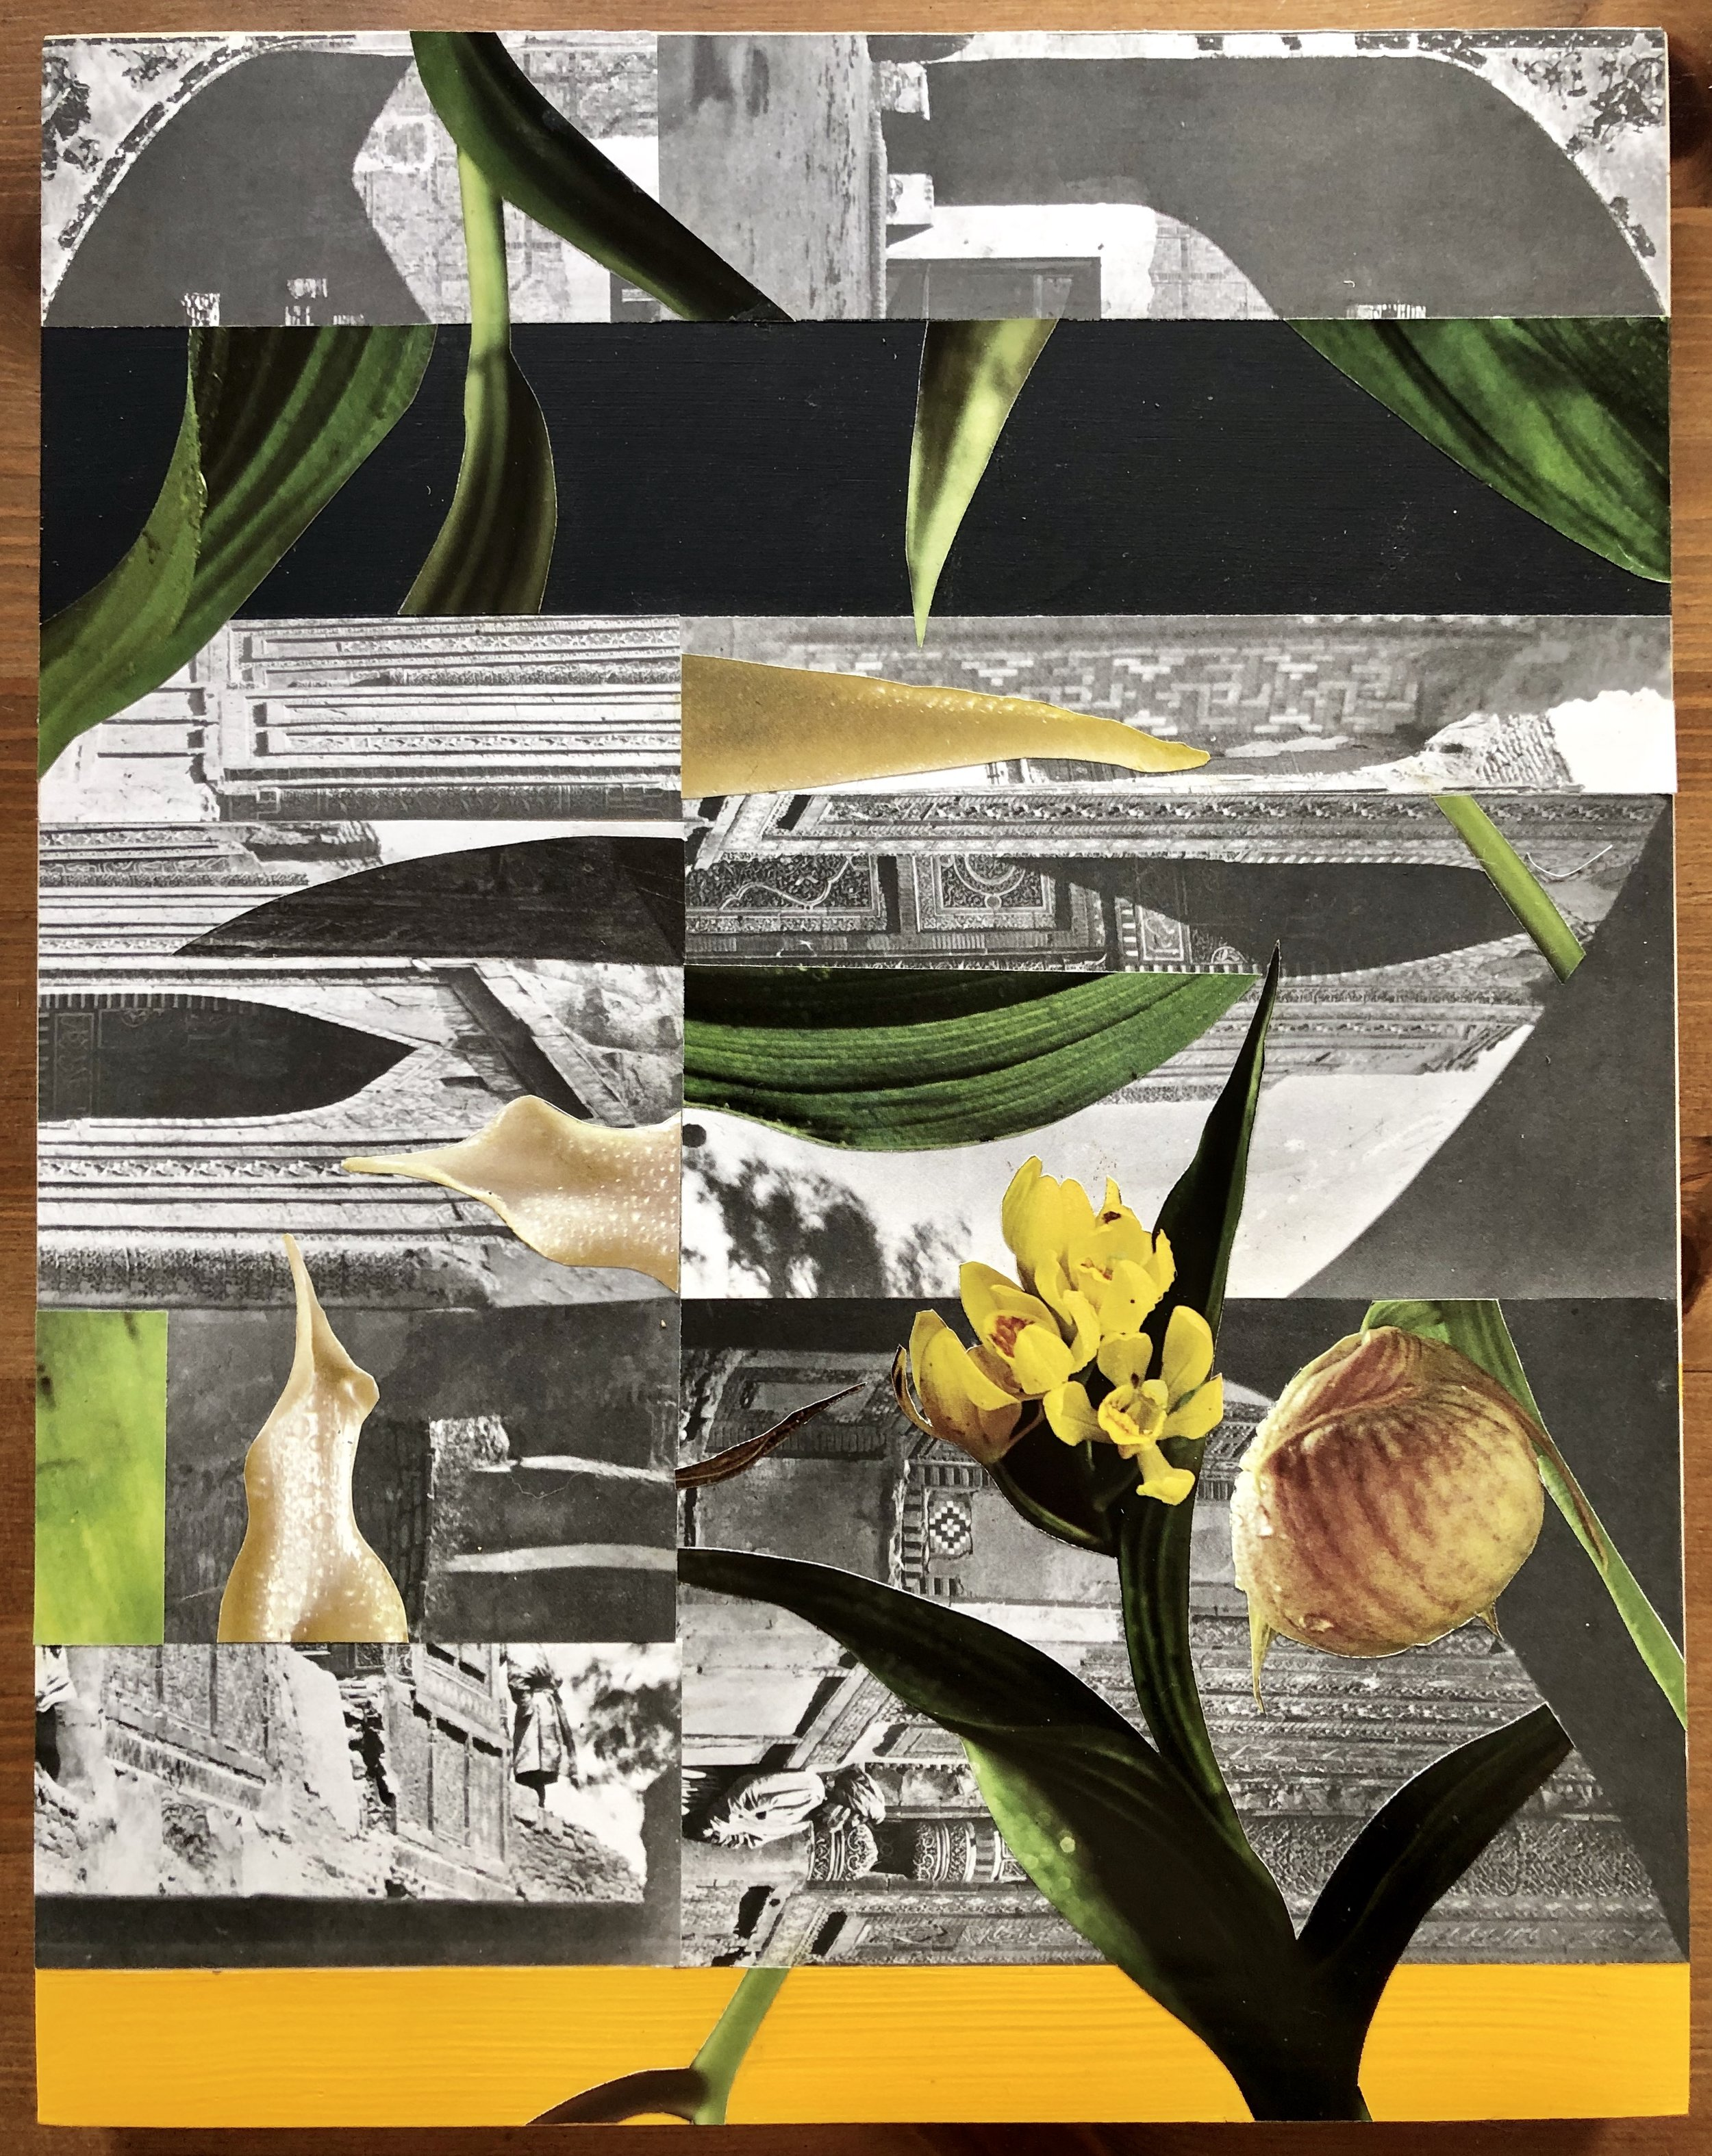 "Collage (Alcove) 11"" x 14"" (on wood with acrylic paint) 2019"